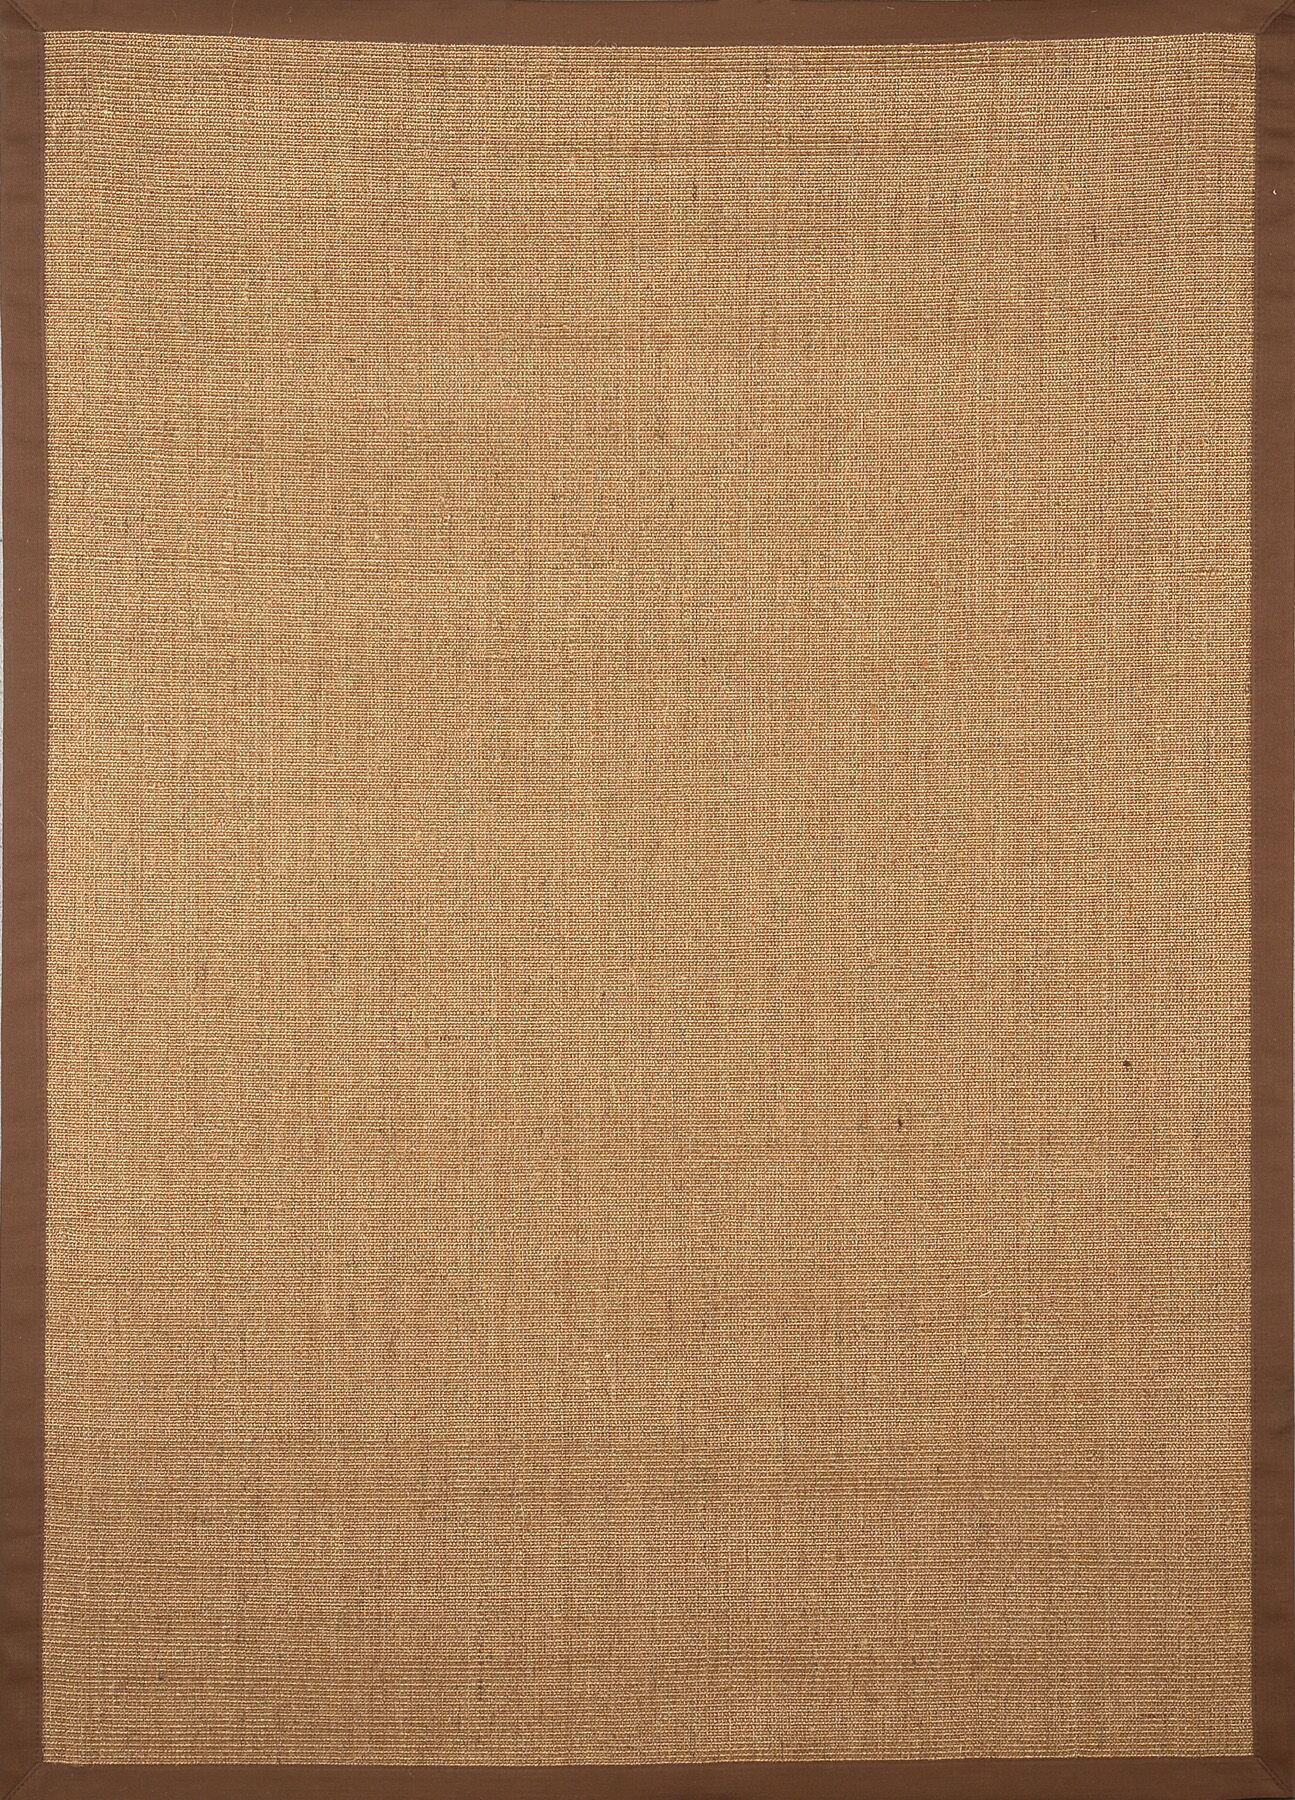 Cheyanne Brown Border Area Rug Rug Size: Rectangle 3' x 4'7